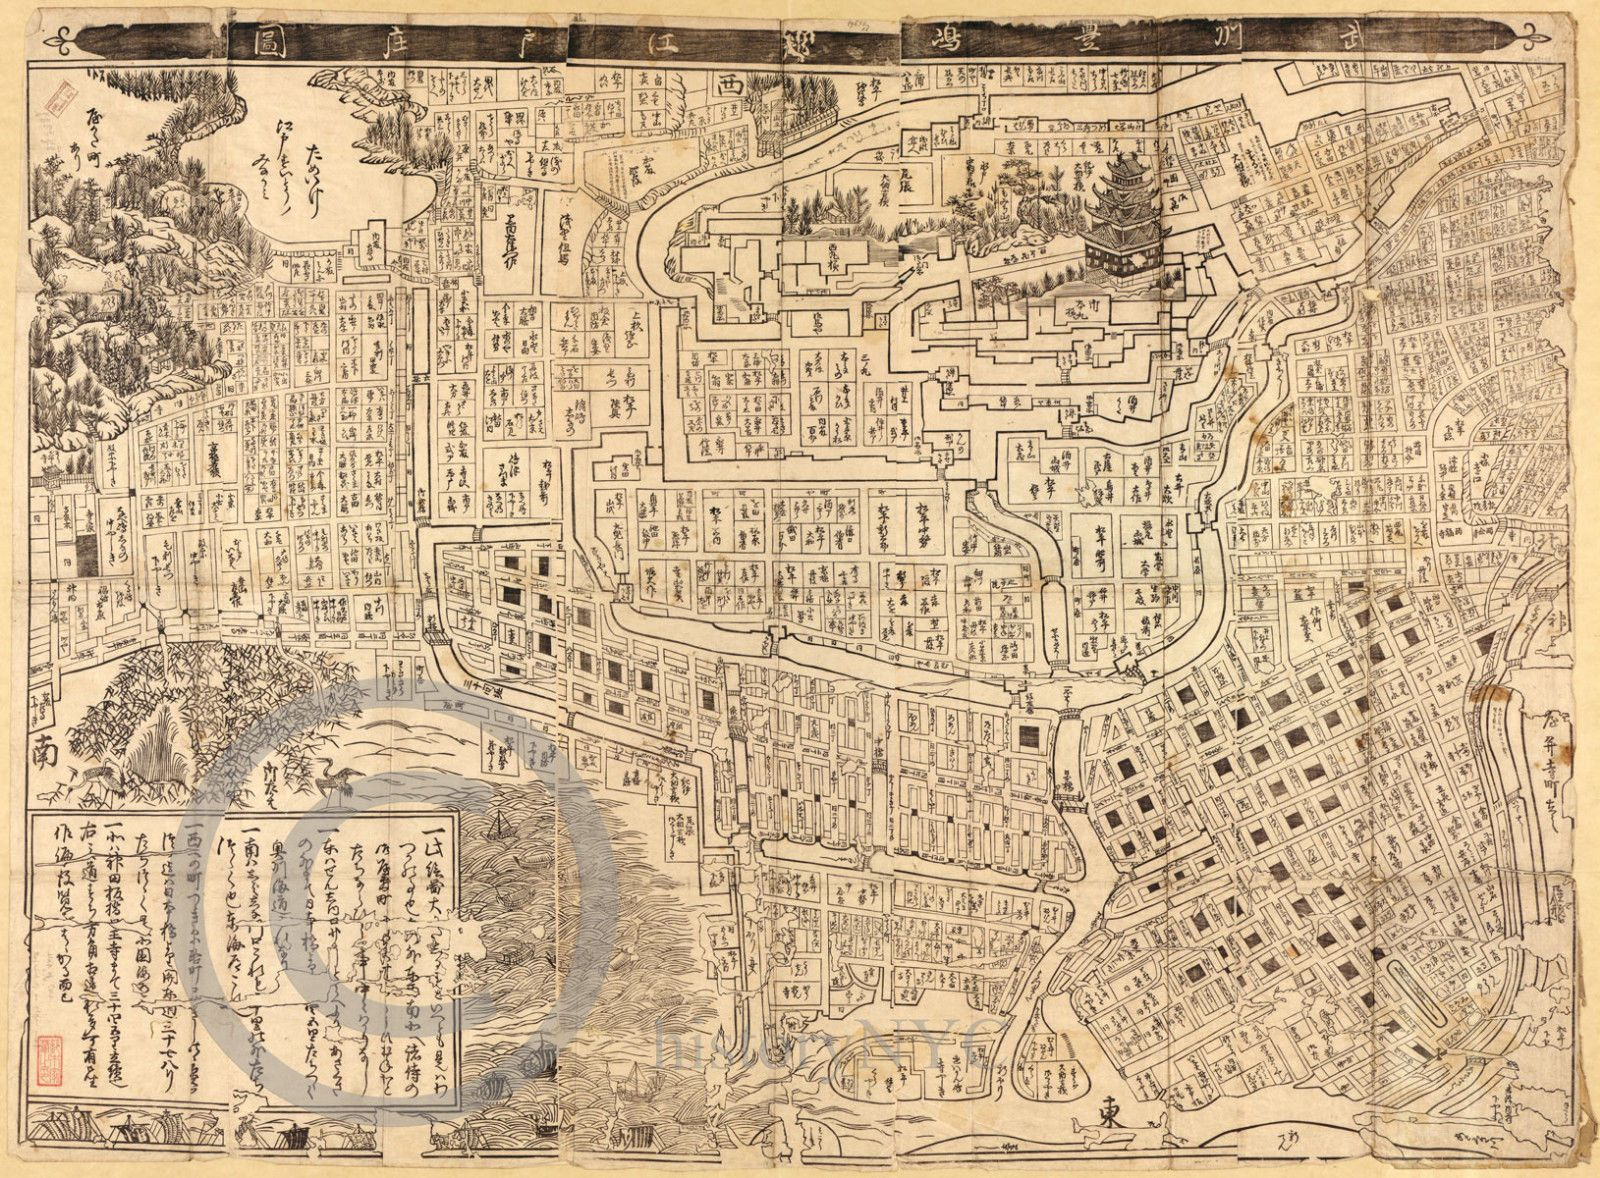 Ebay Historic Japan Map 2495 httpwwwebaycomitm1682Old